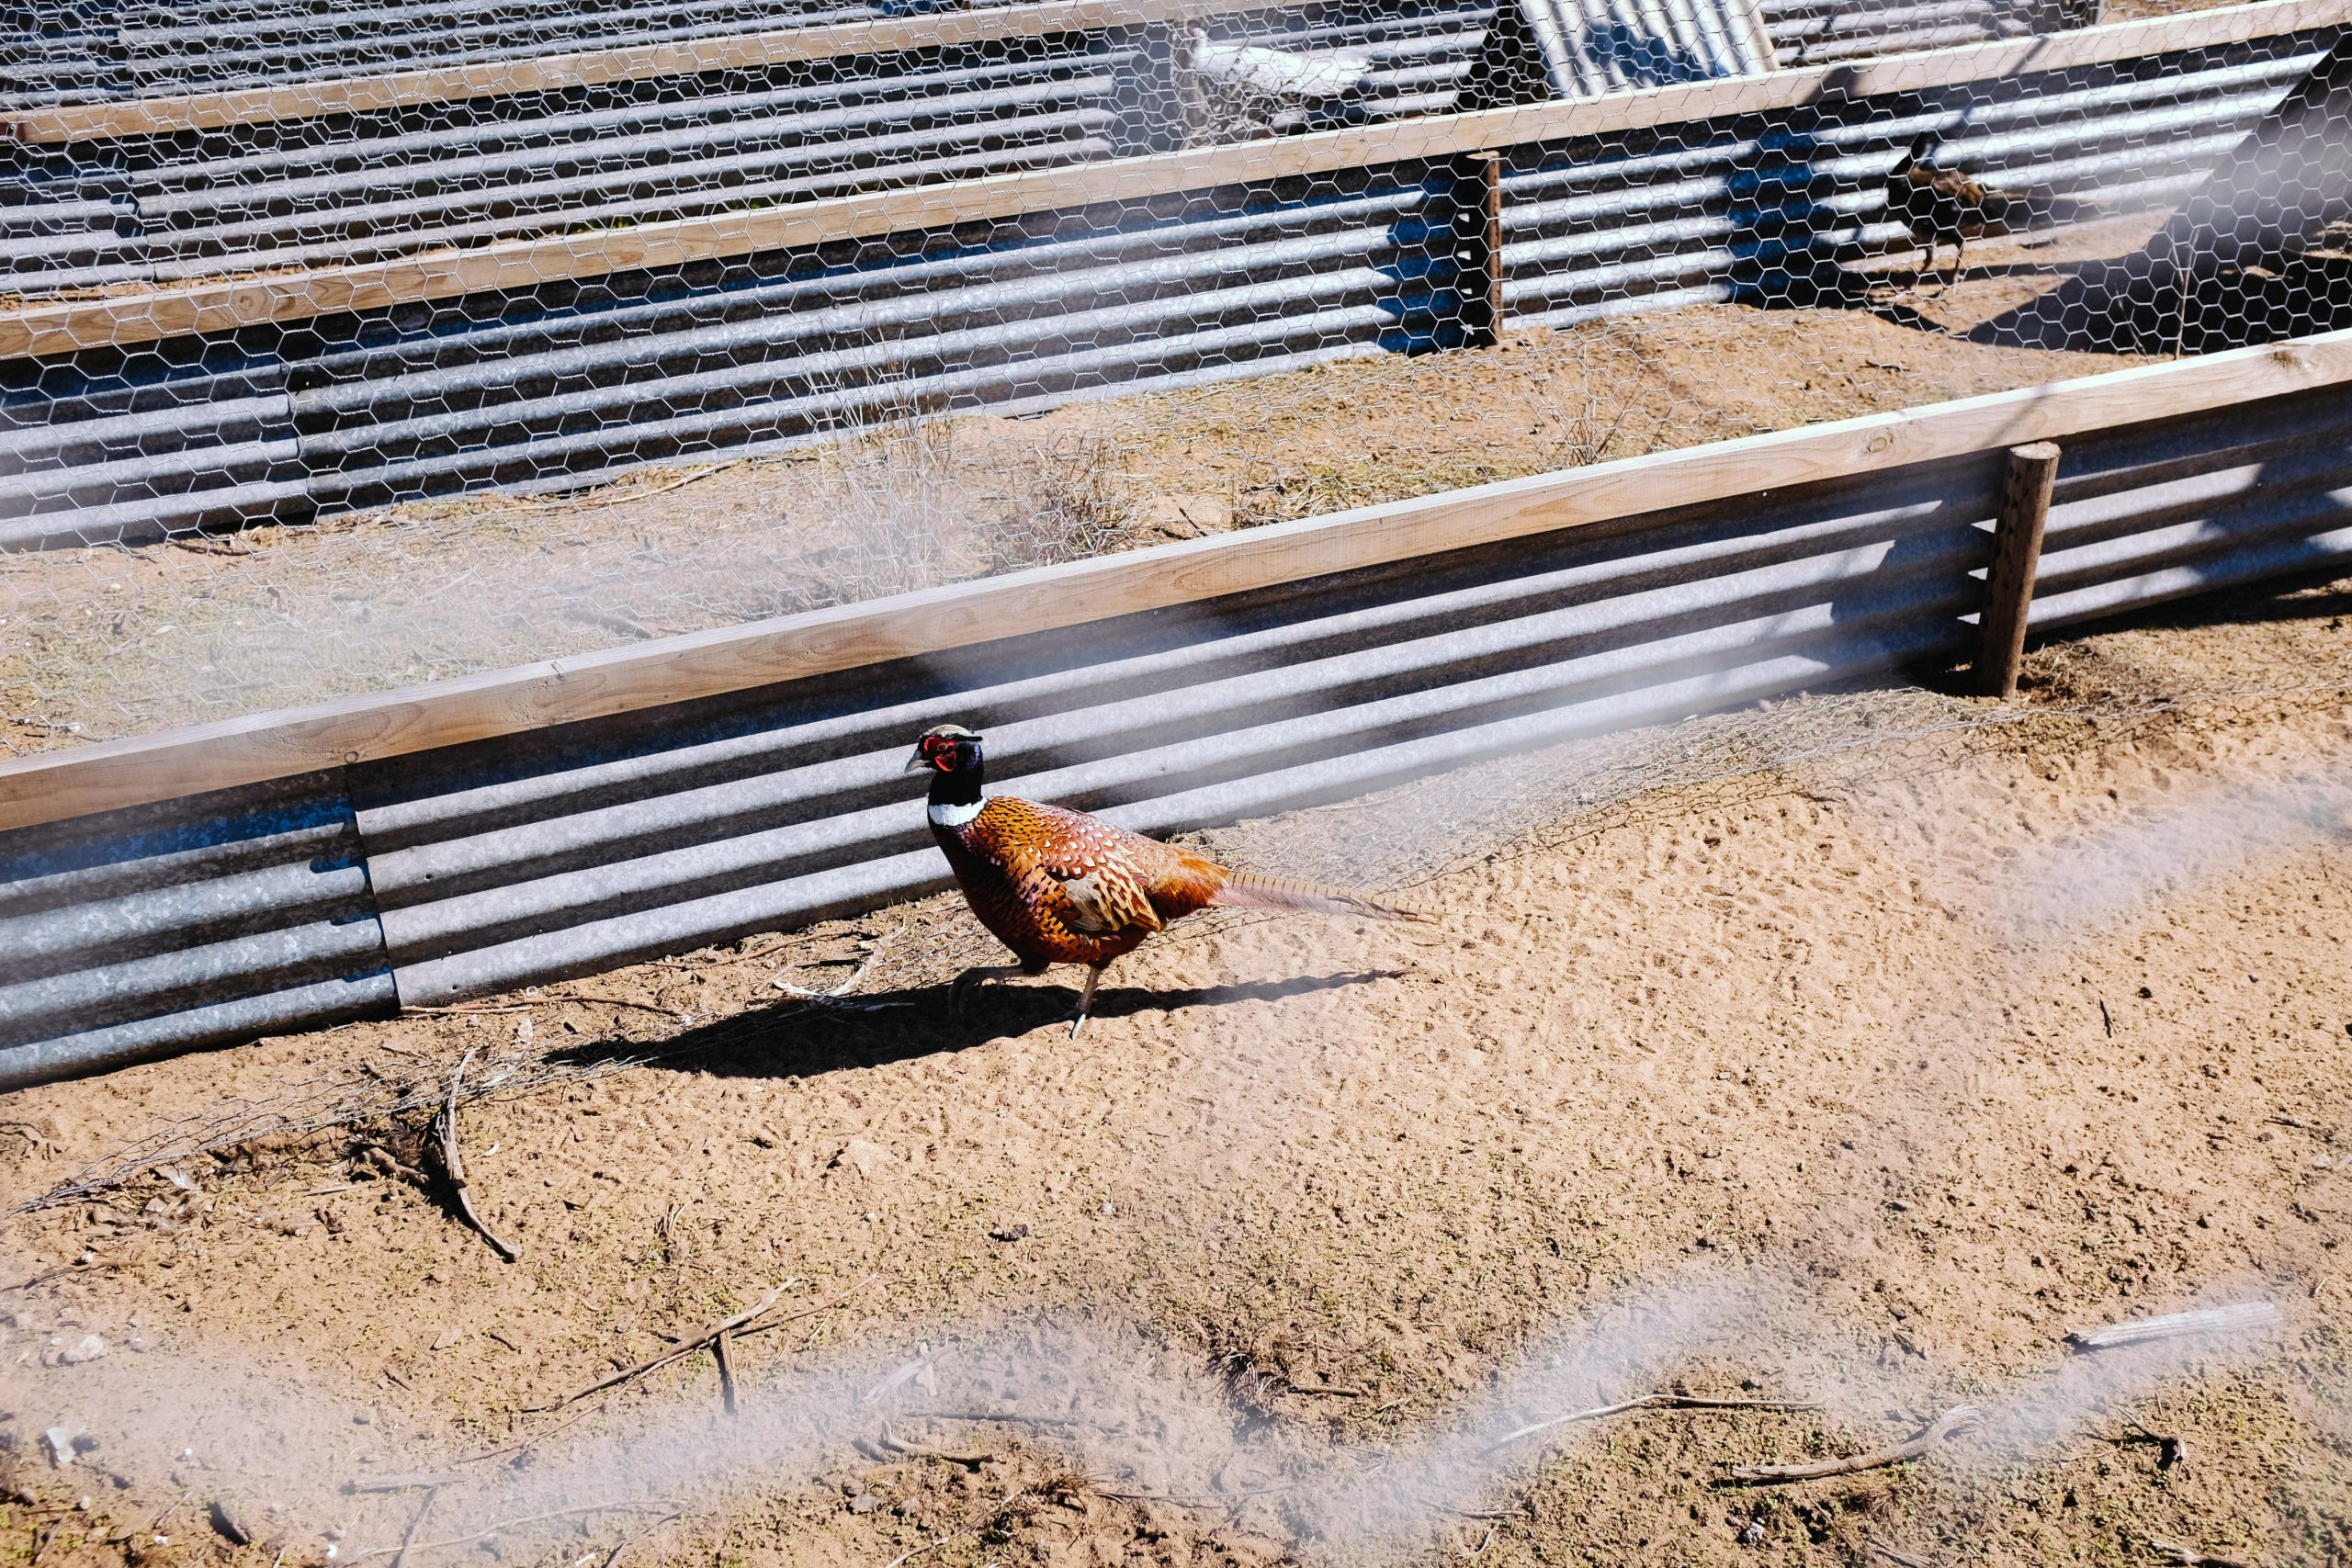 Pheasant in Cage